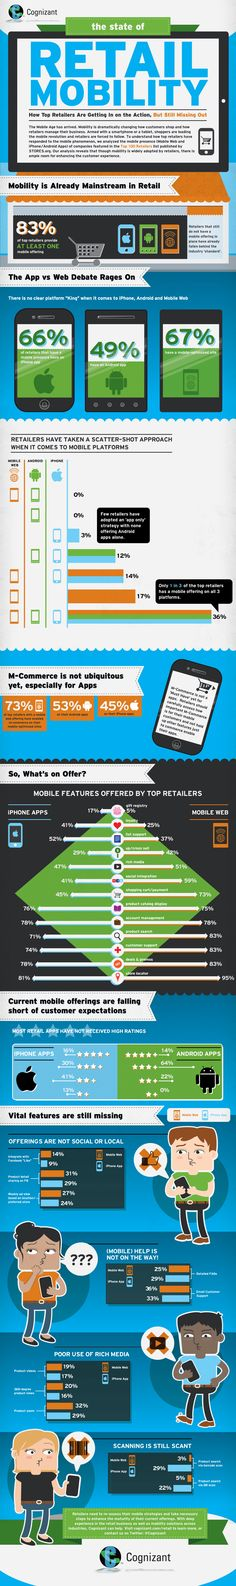 retail-mobility-infographic